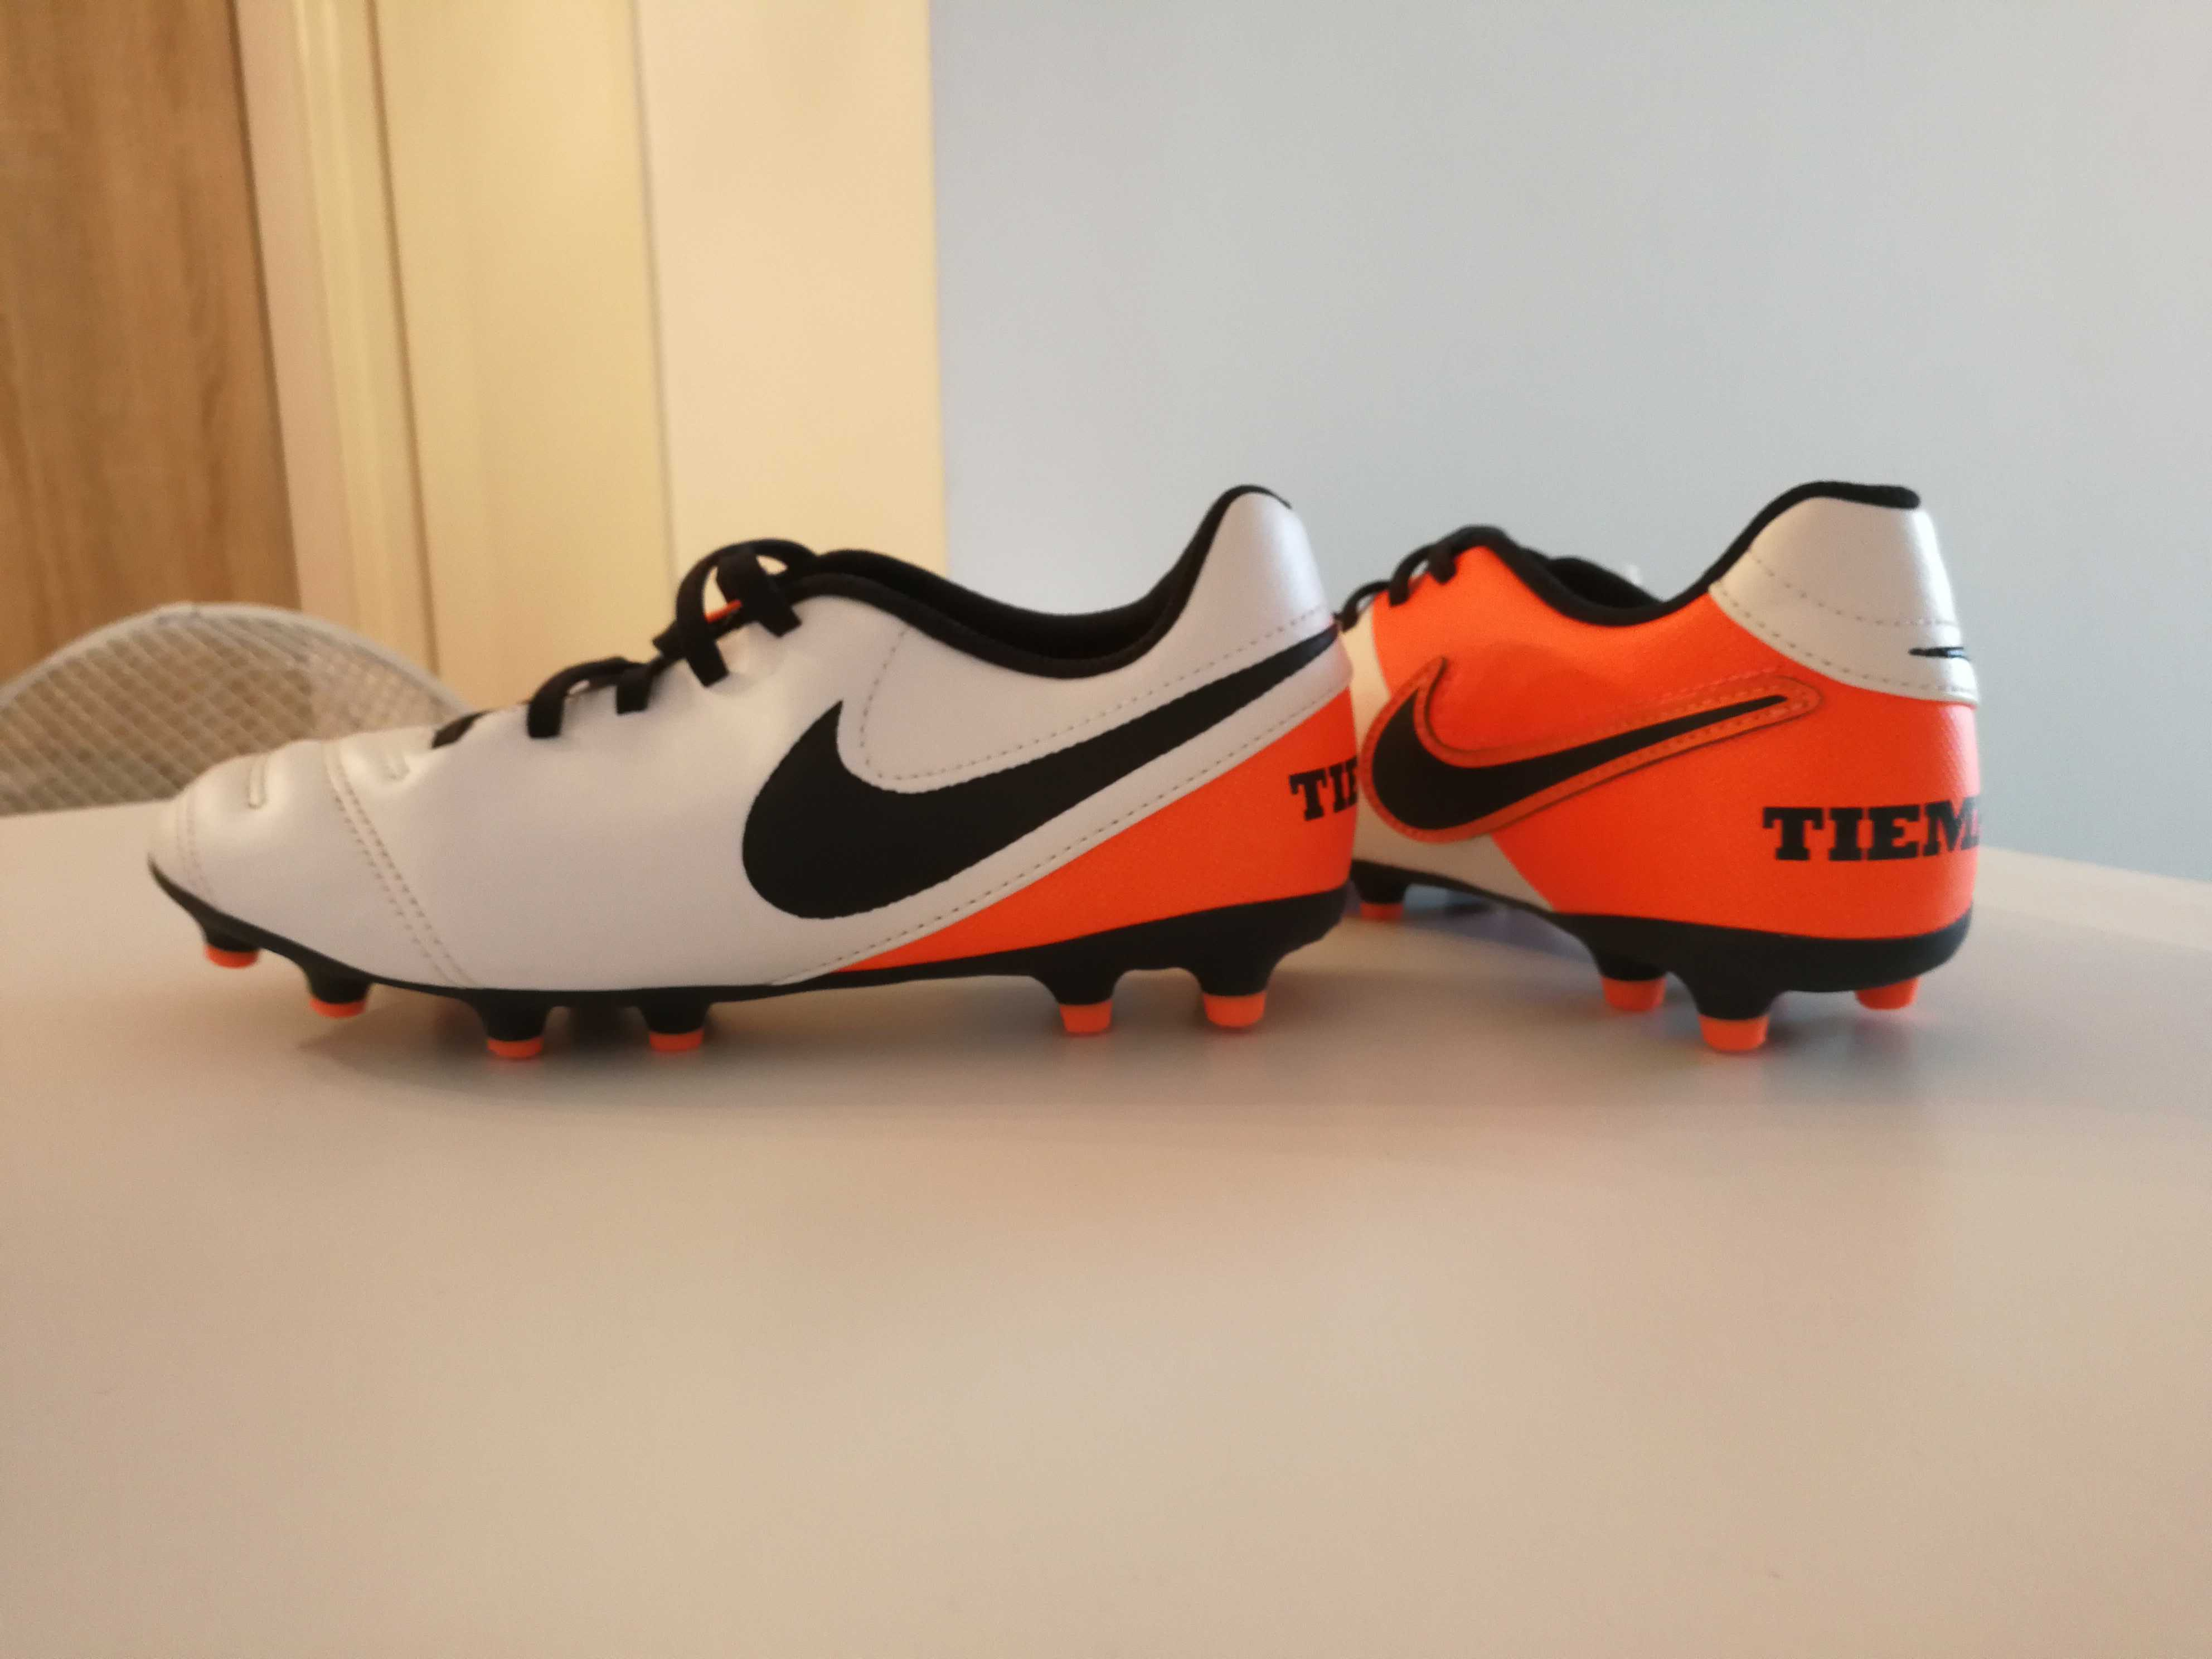 Chaussures de foot Nike taille 35